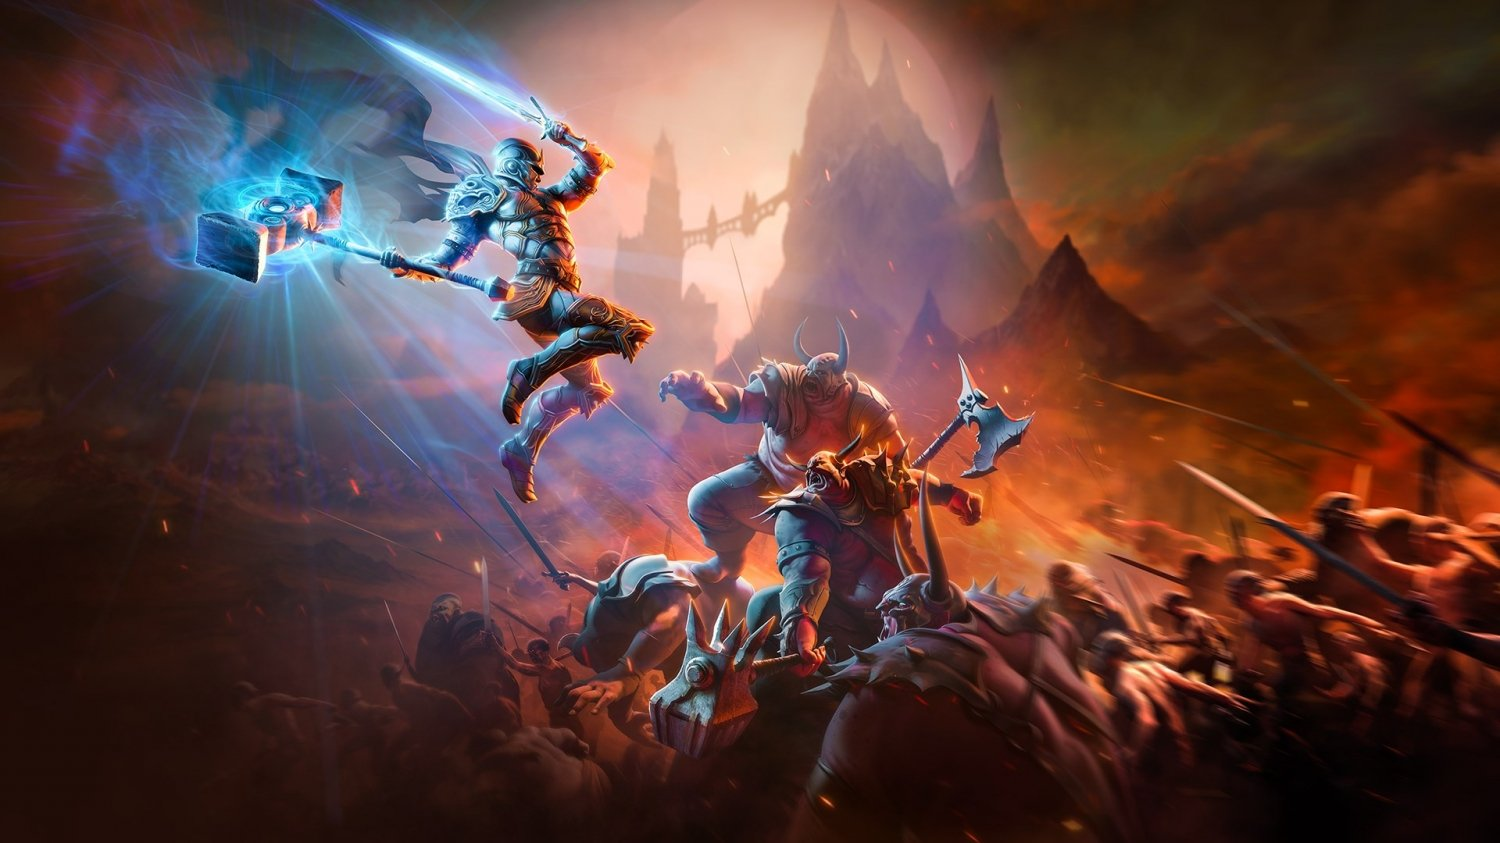 Image of article 'Kingdoms of Amalur remaster coming this August from THQ Nordic'